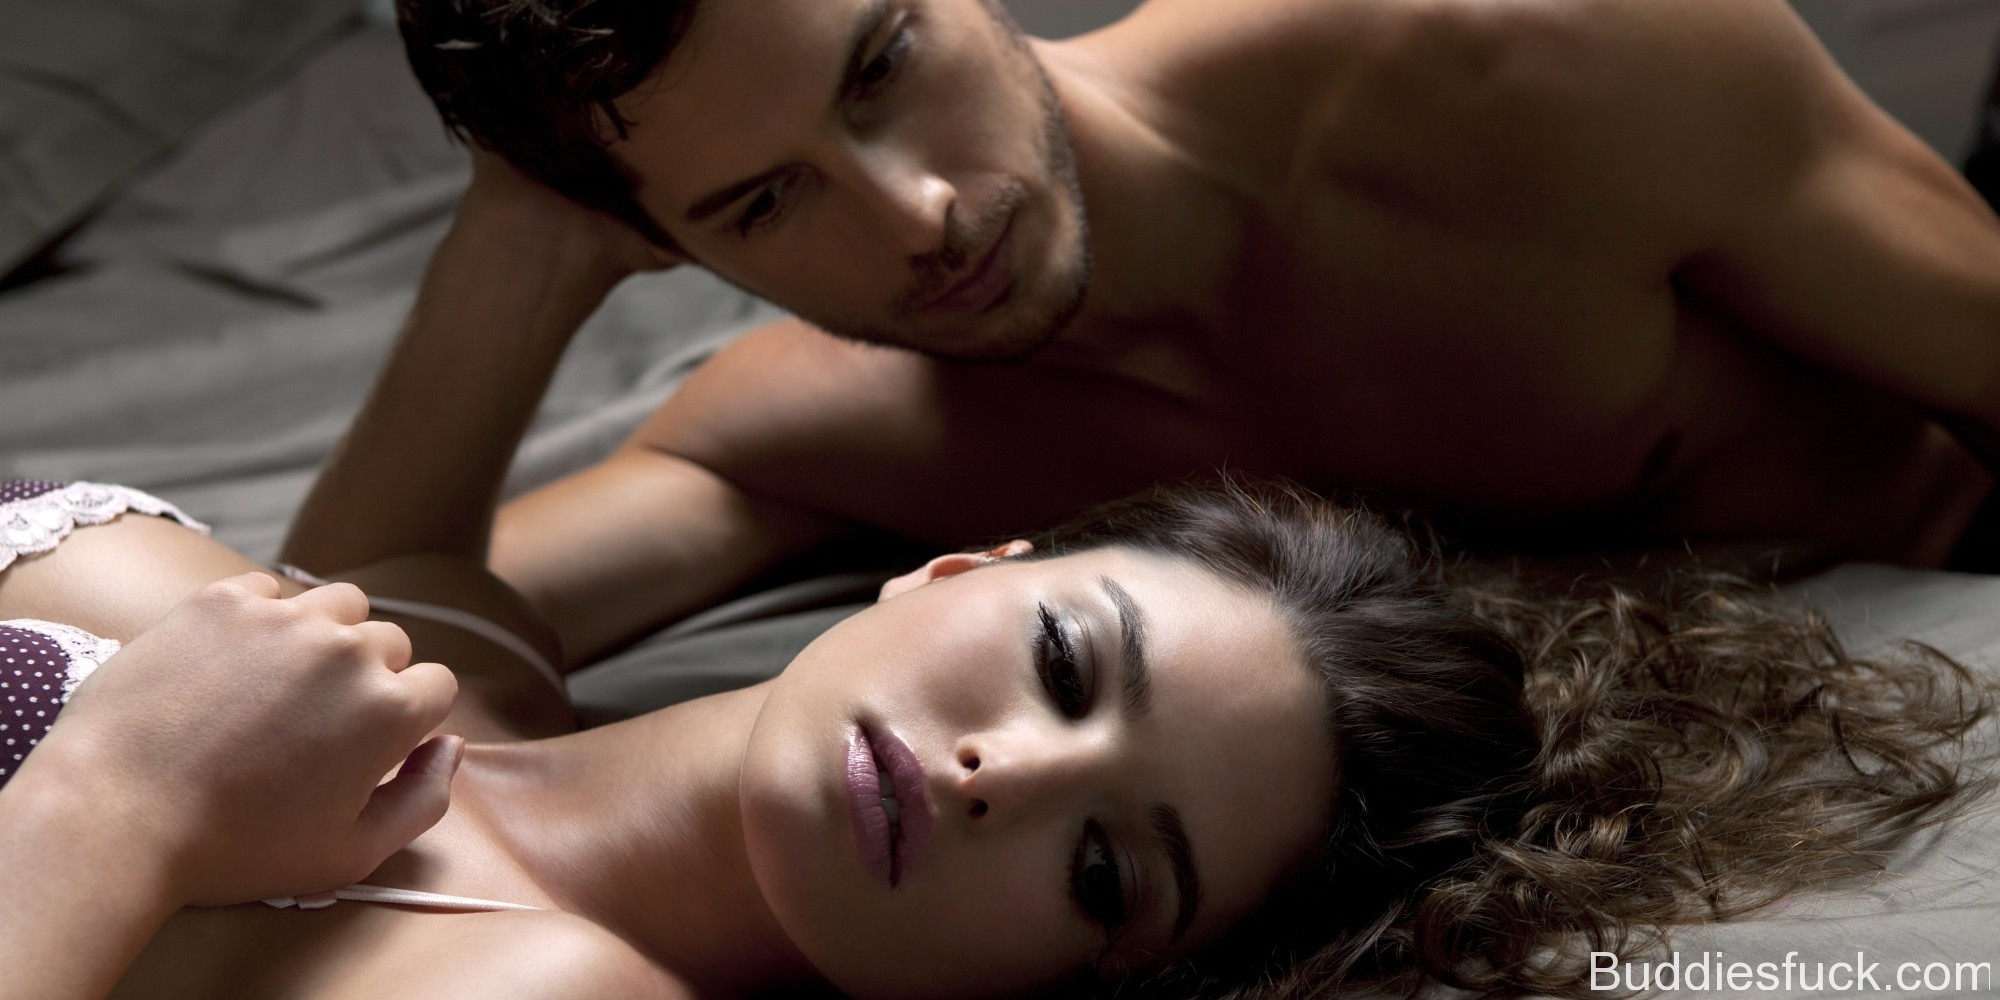 Top 10 Things Guys Love About Women